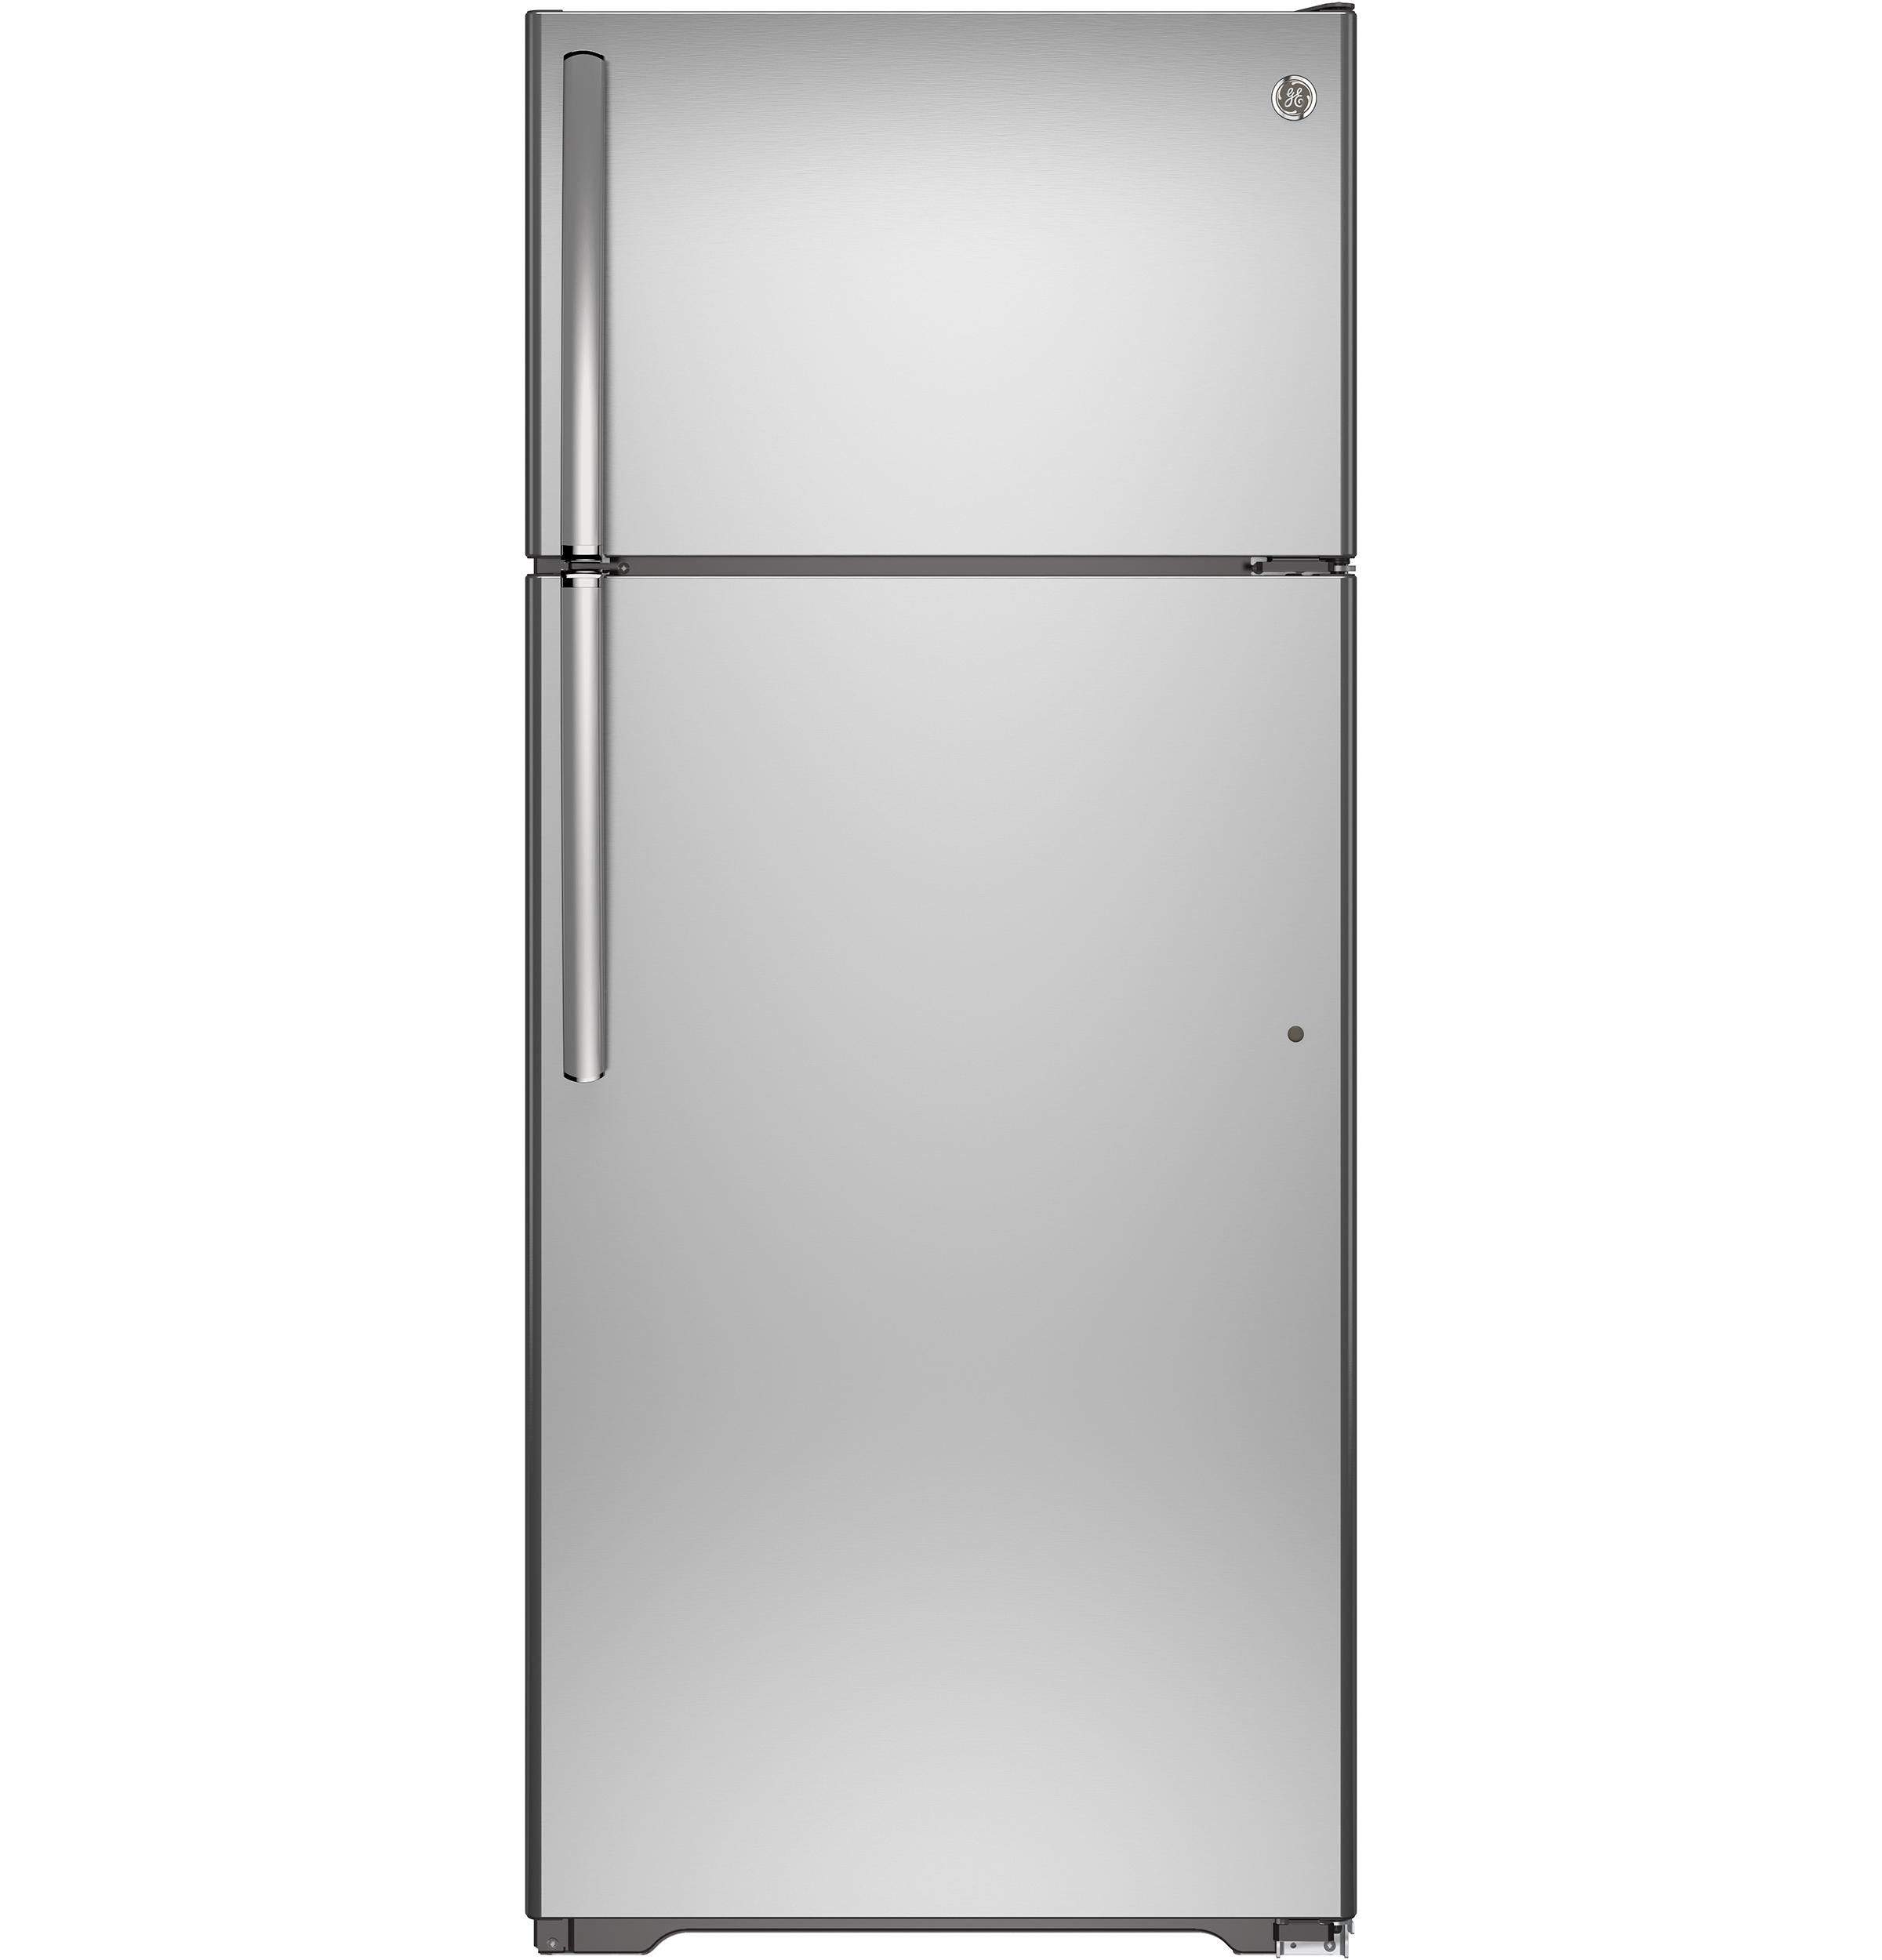 GE(R) 17.5 Cu. Ft. Top-Freezer Refrigerator with Autofill Pitcher